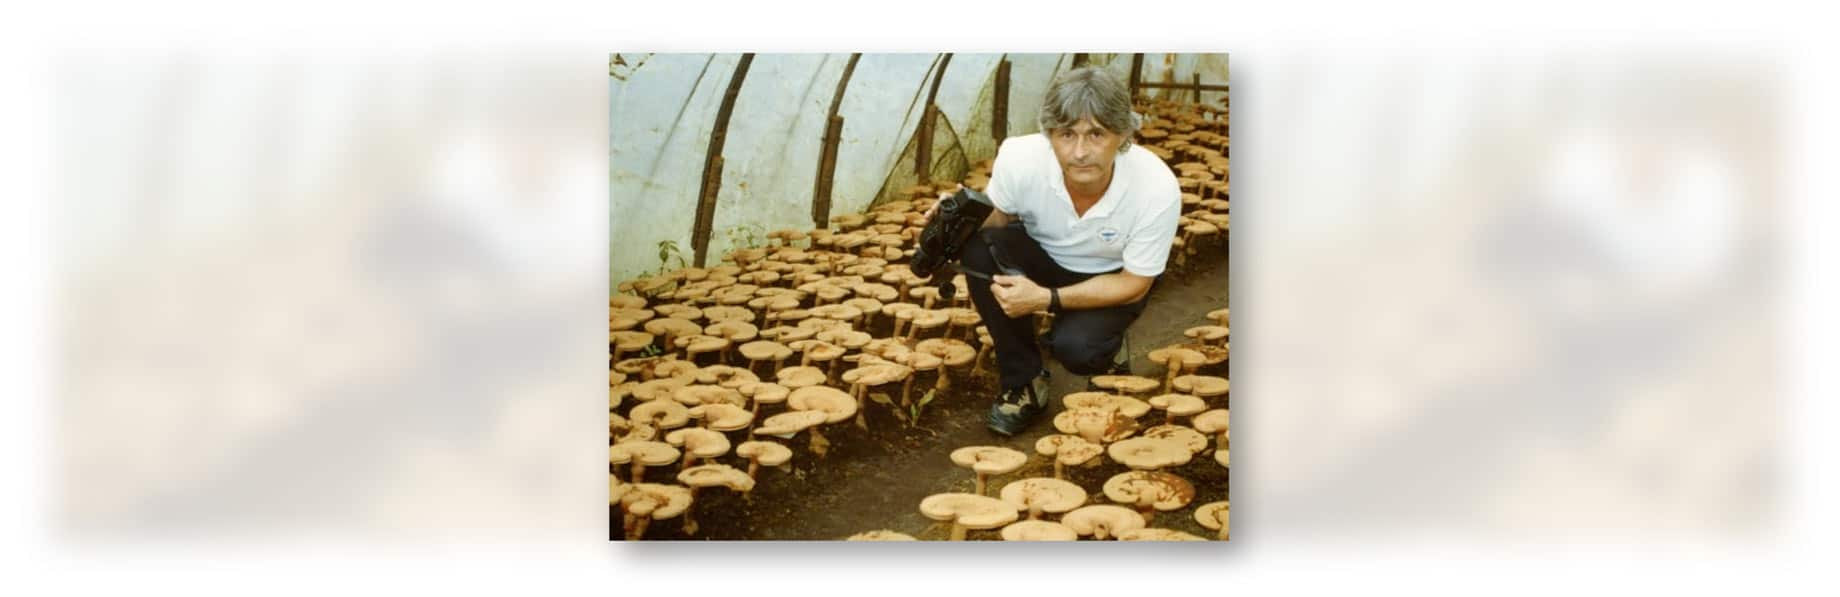 Jeff Chilton Reishi Farm 1990s